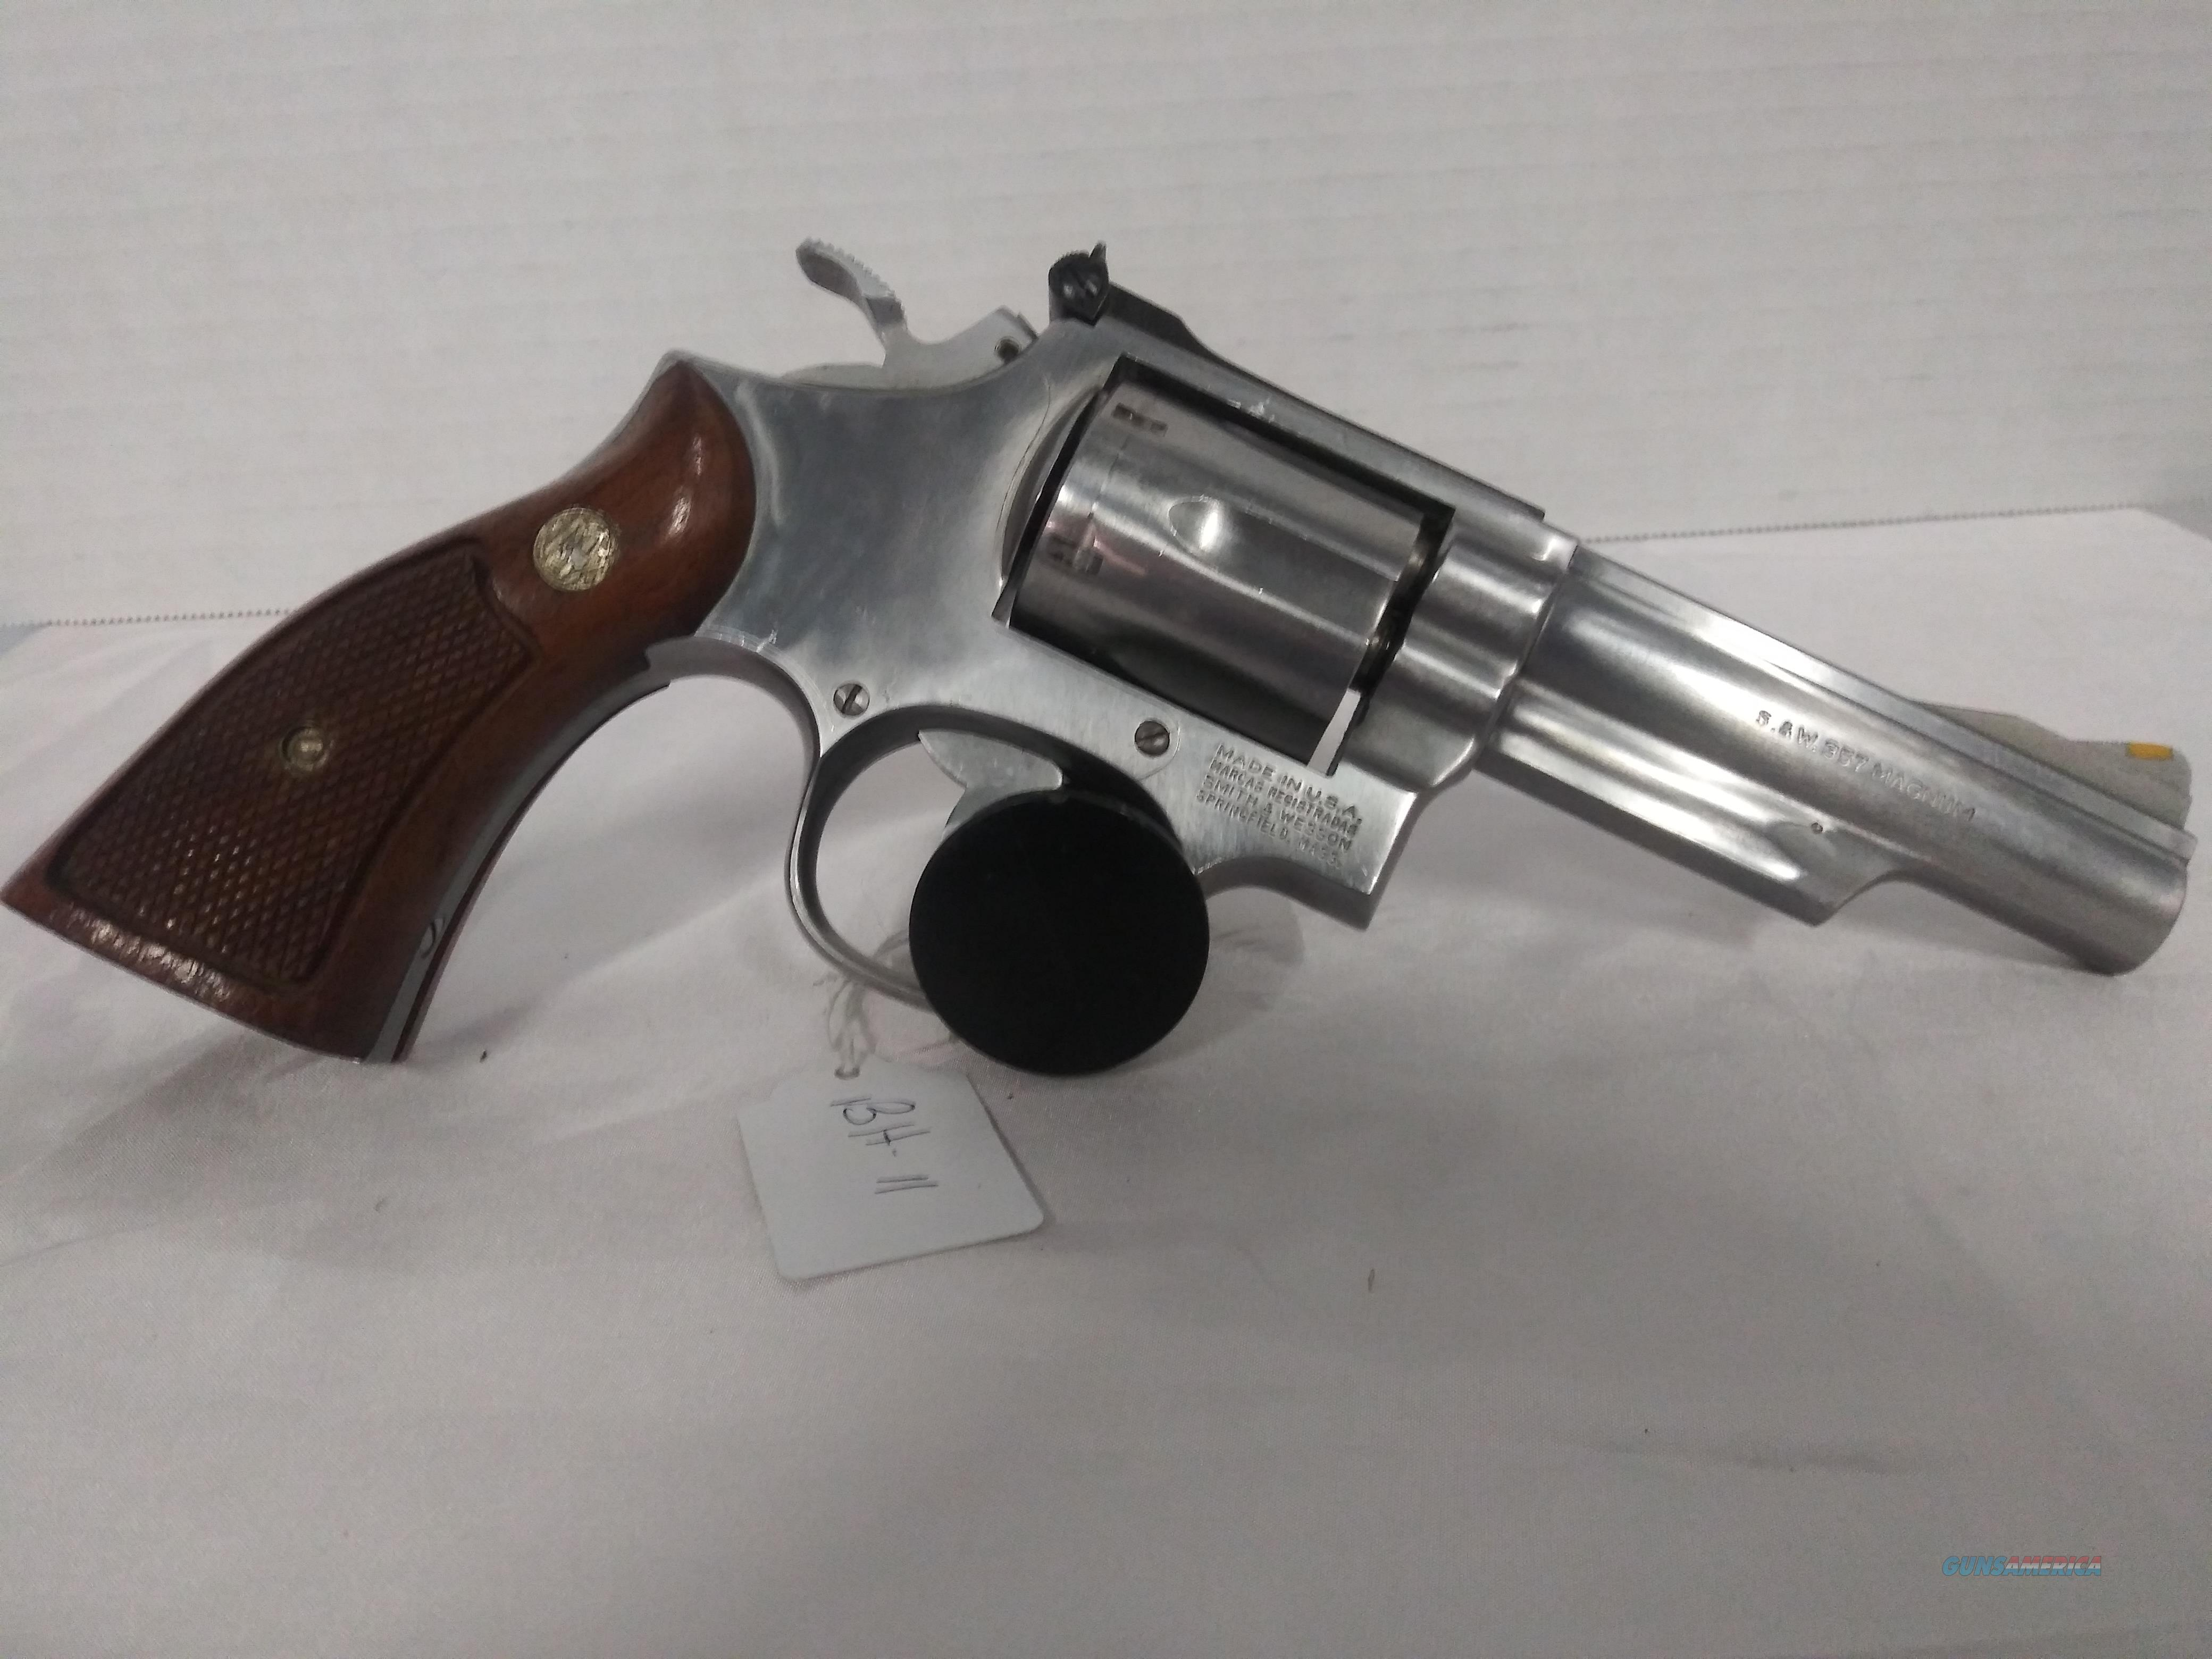 Smith & Wesson 66-2 357 Mag Used No CC Fees Layaway  Guns > Pistols > Smith & Wesson Revolvers > Med. Frame ( K/L )